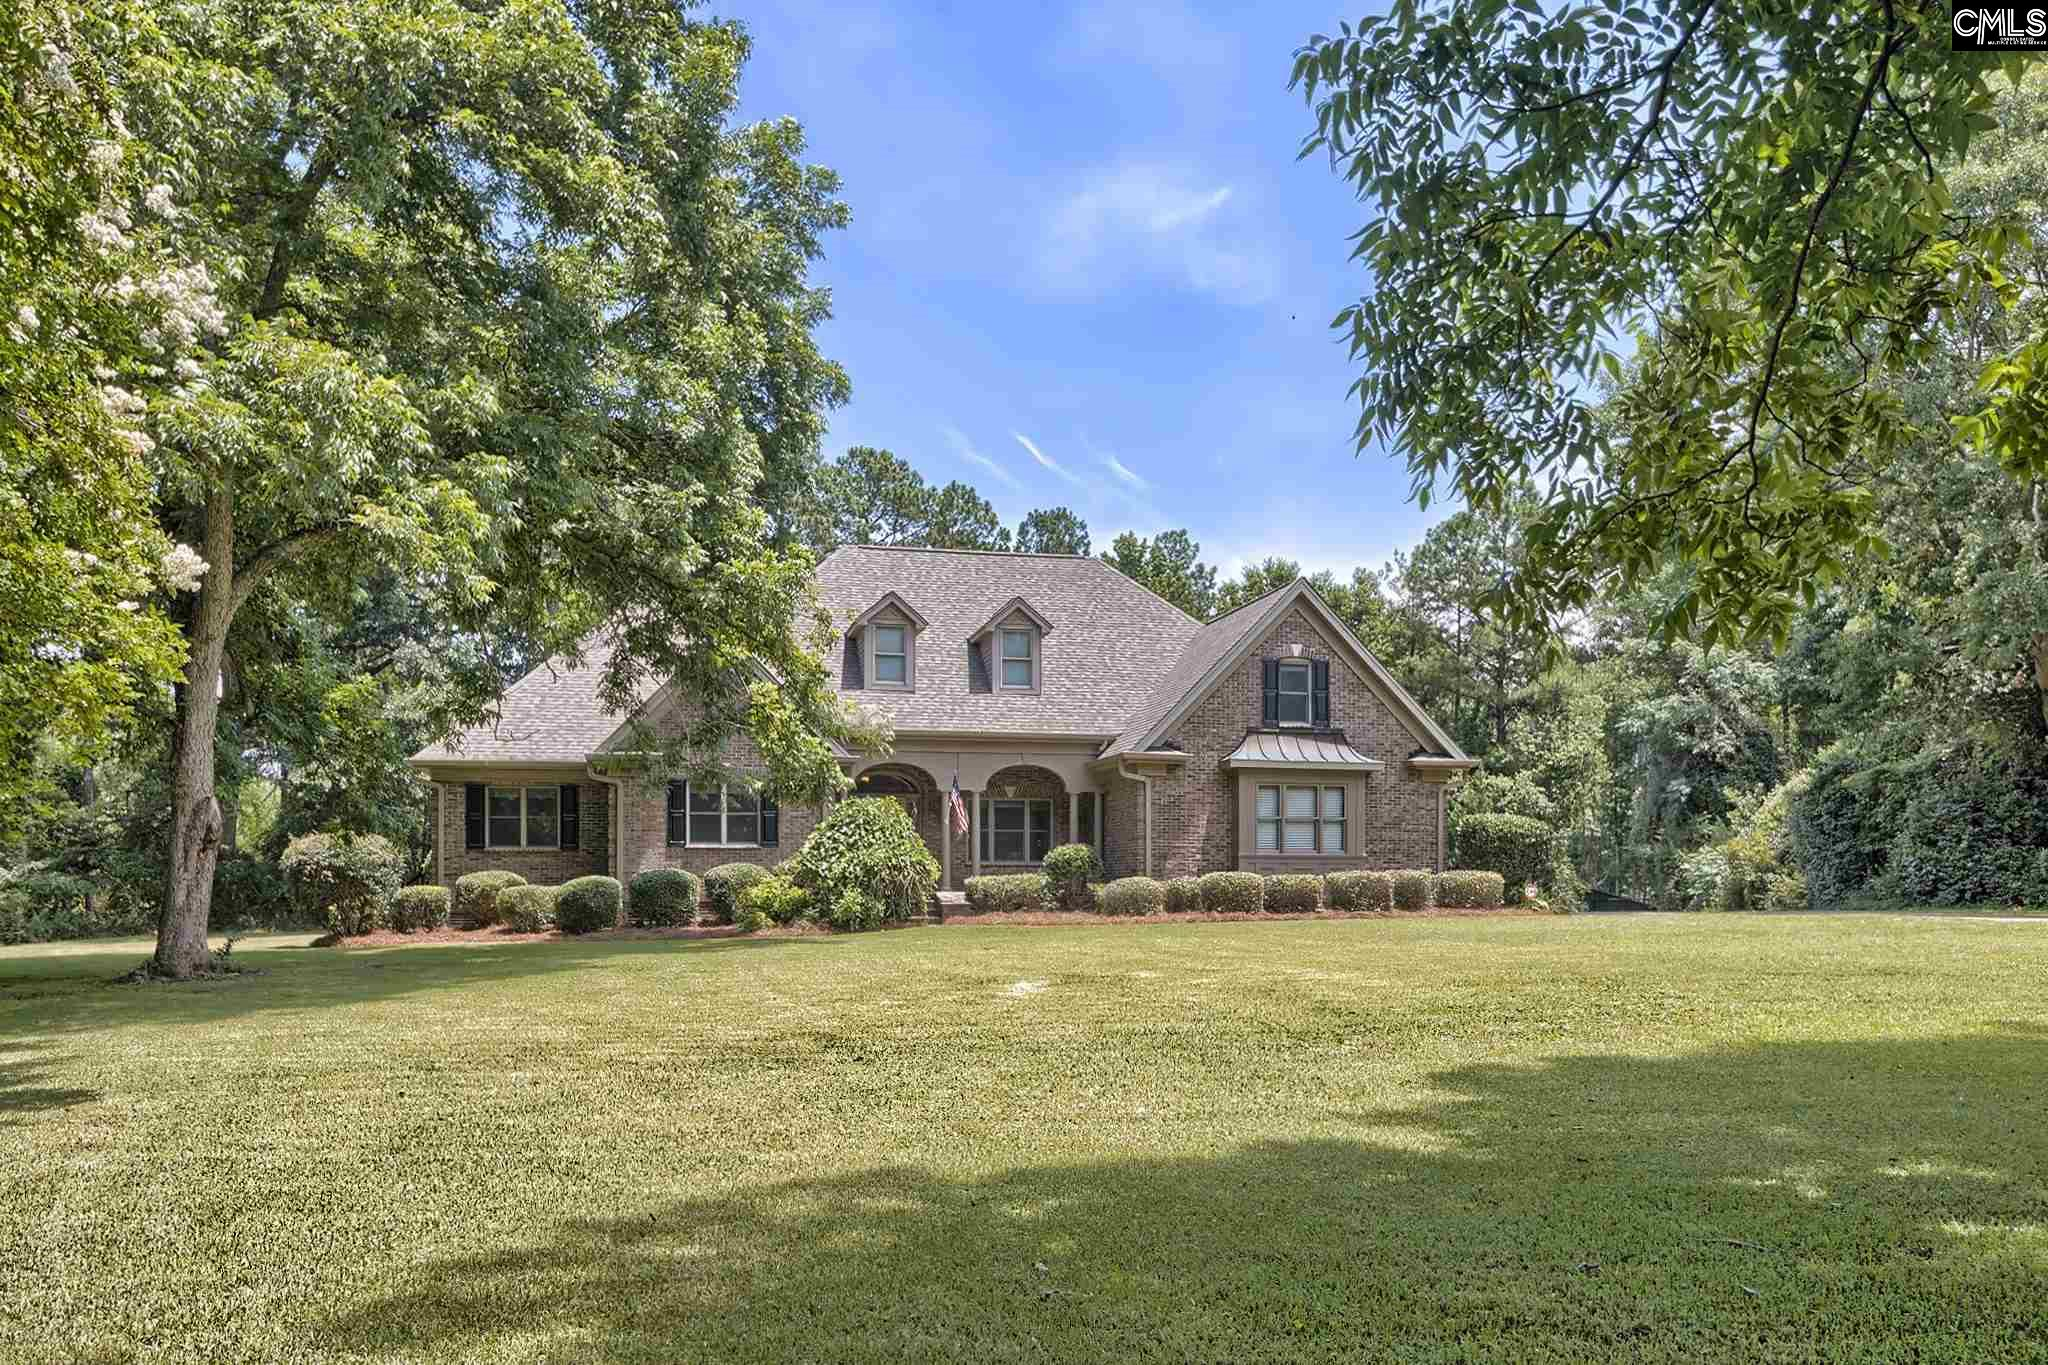 111 Arborshade #3 Lexington, SC 29072